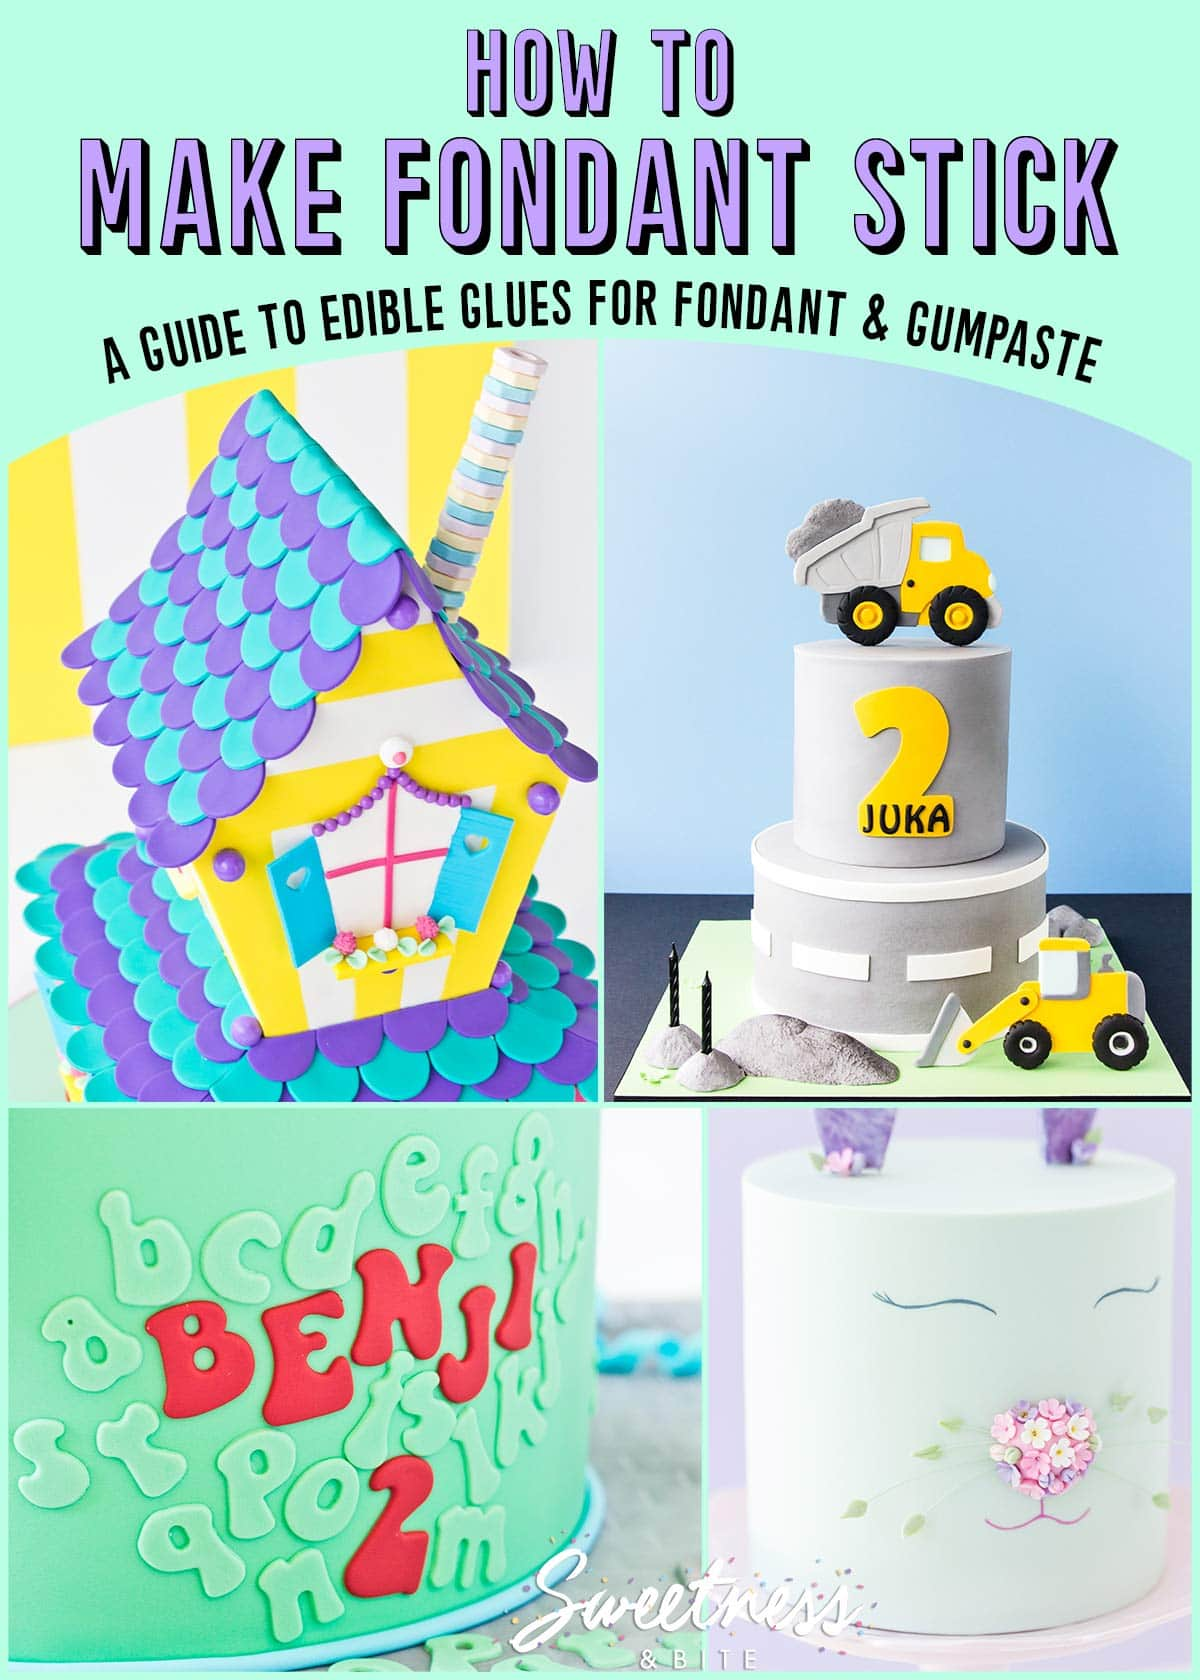 A collage of cake pictures with text overlay reading: How to make fondant stick to fondant - a guide to edible glues for fondant and gumpaste.